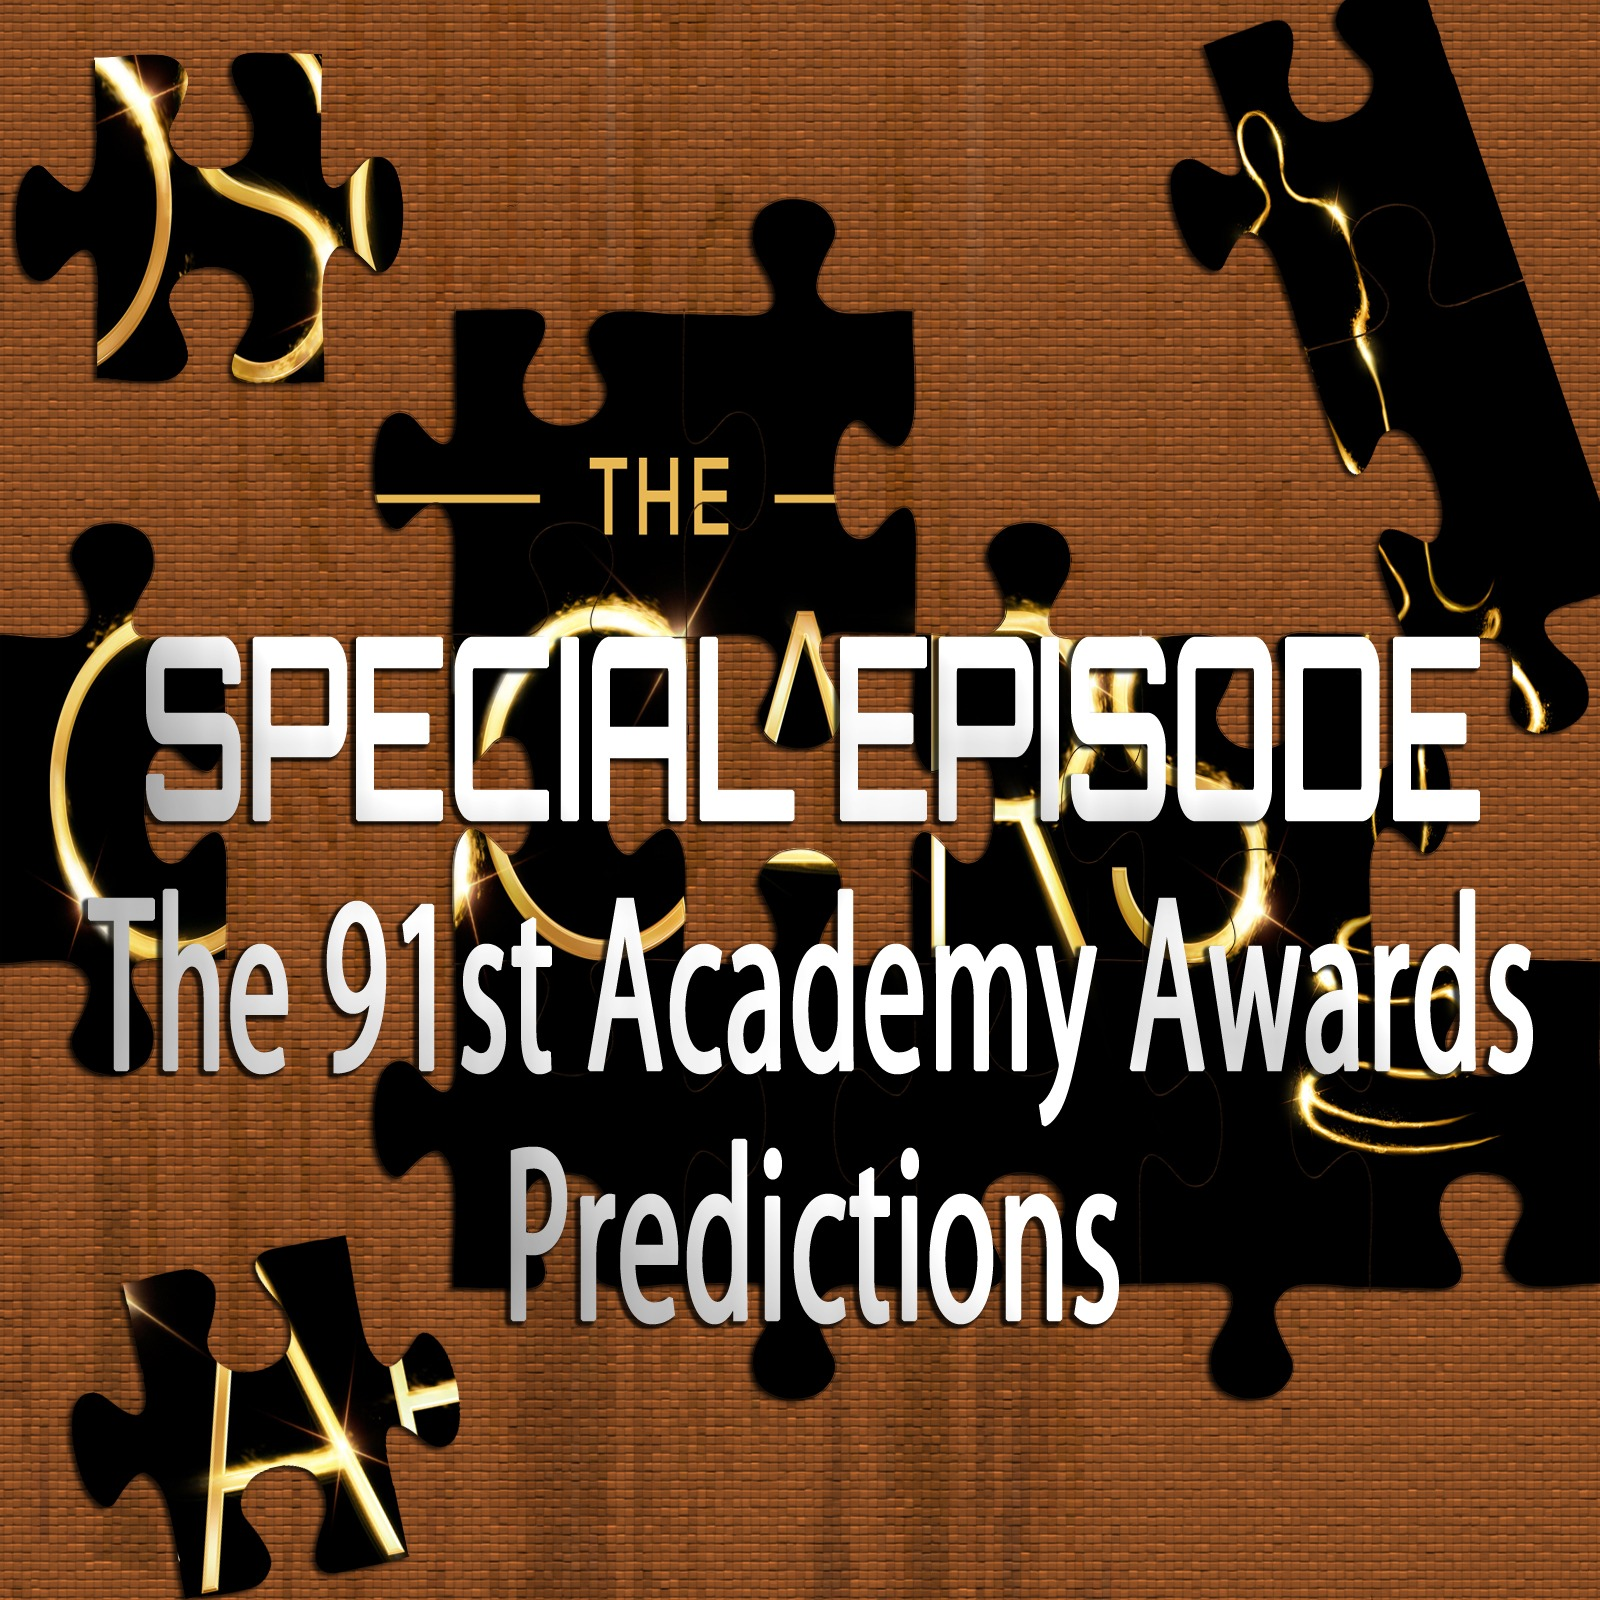 91st Academy Awards Predictions (Special Episode)